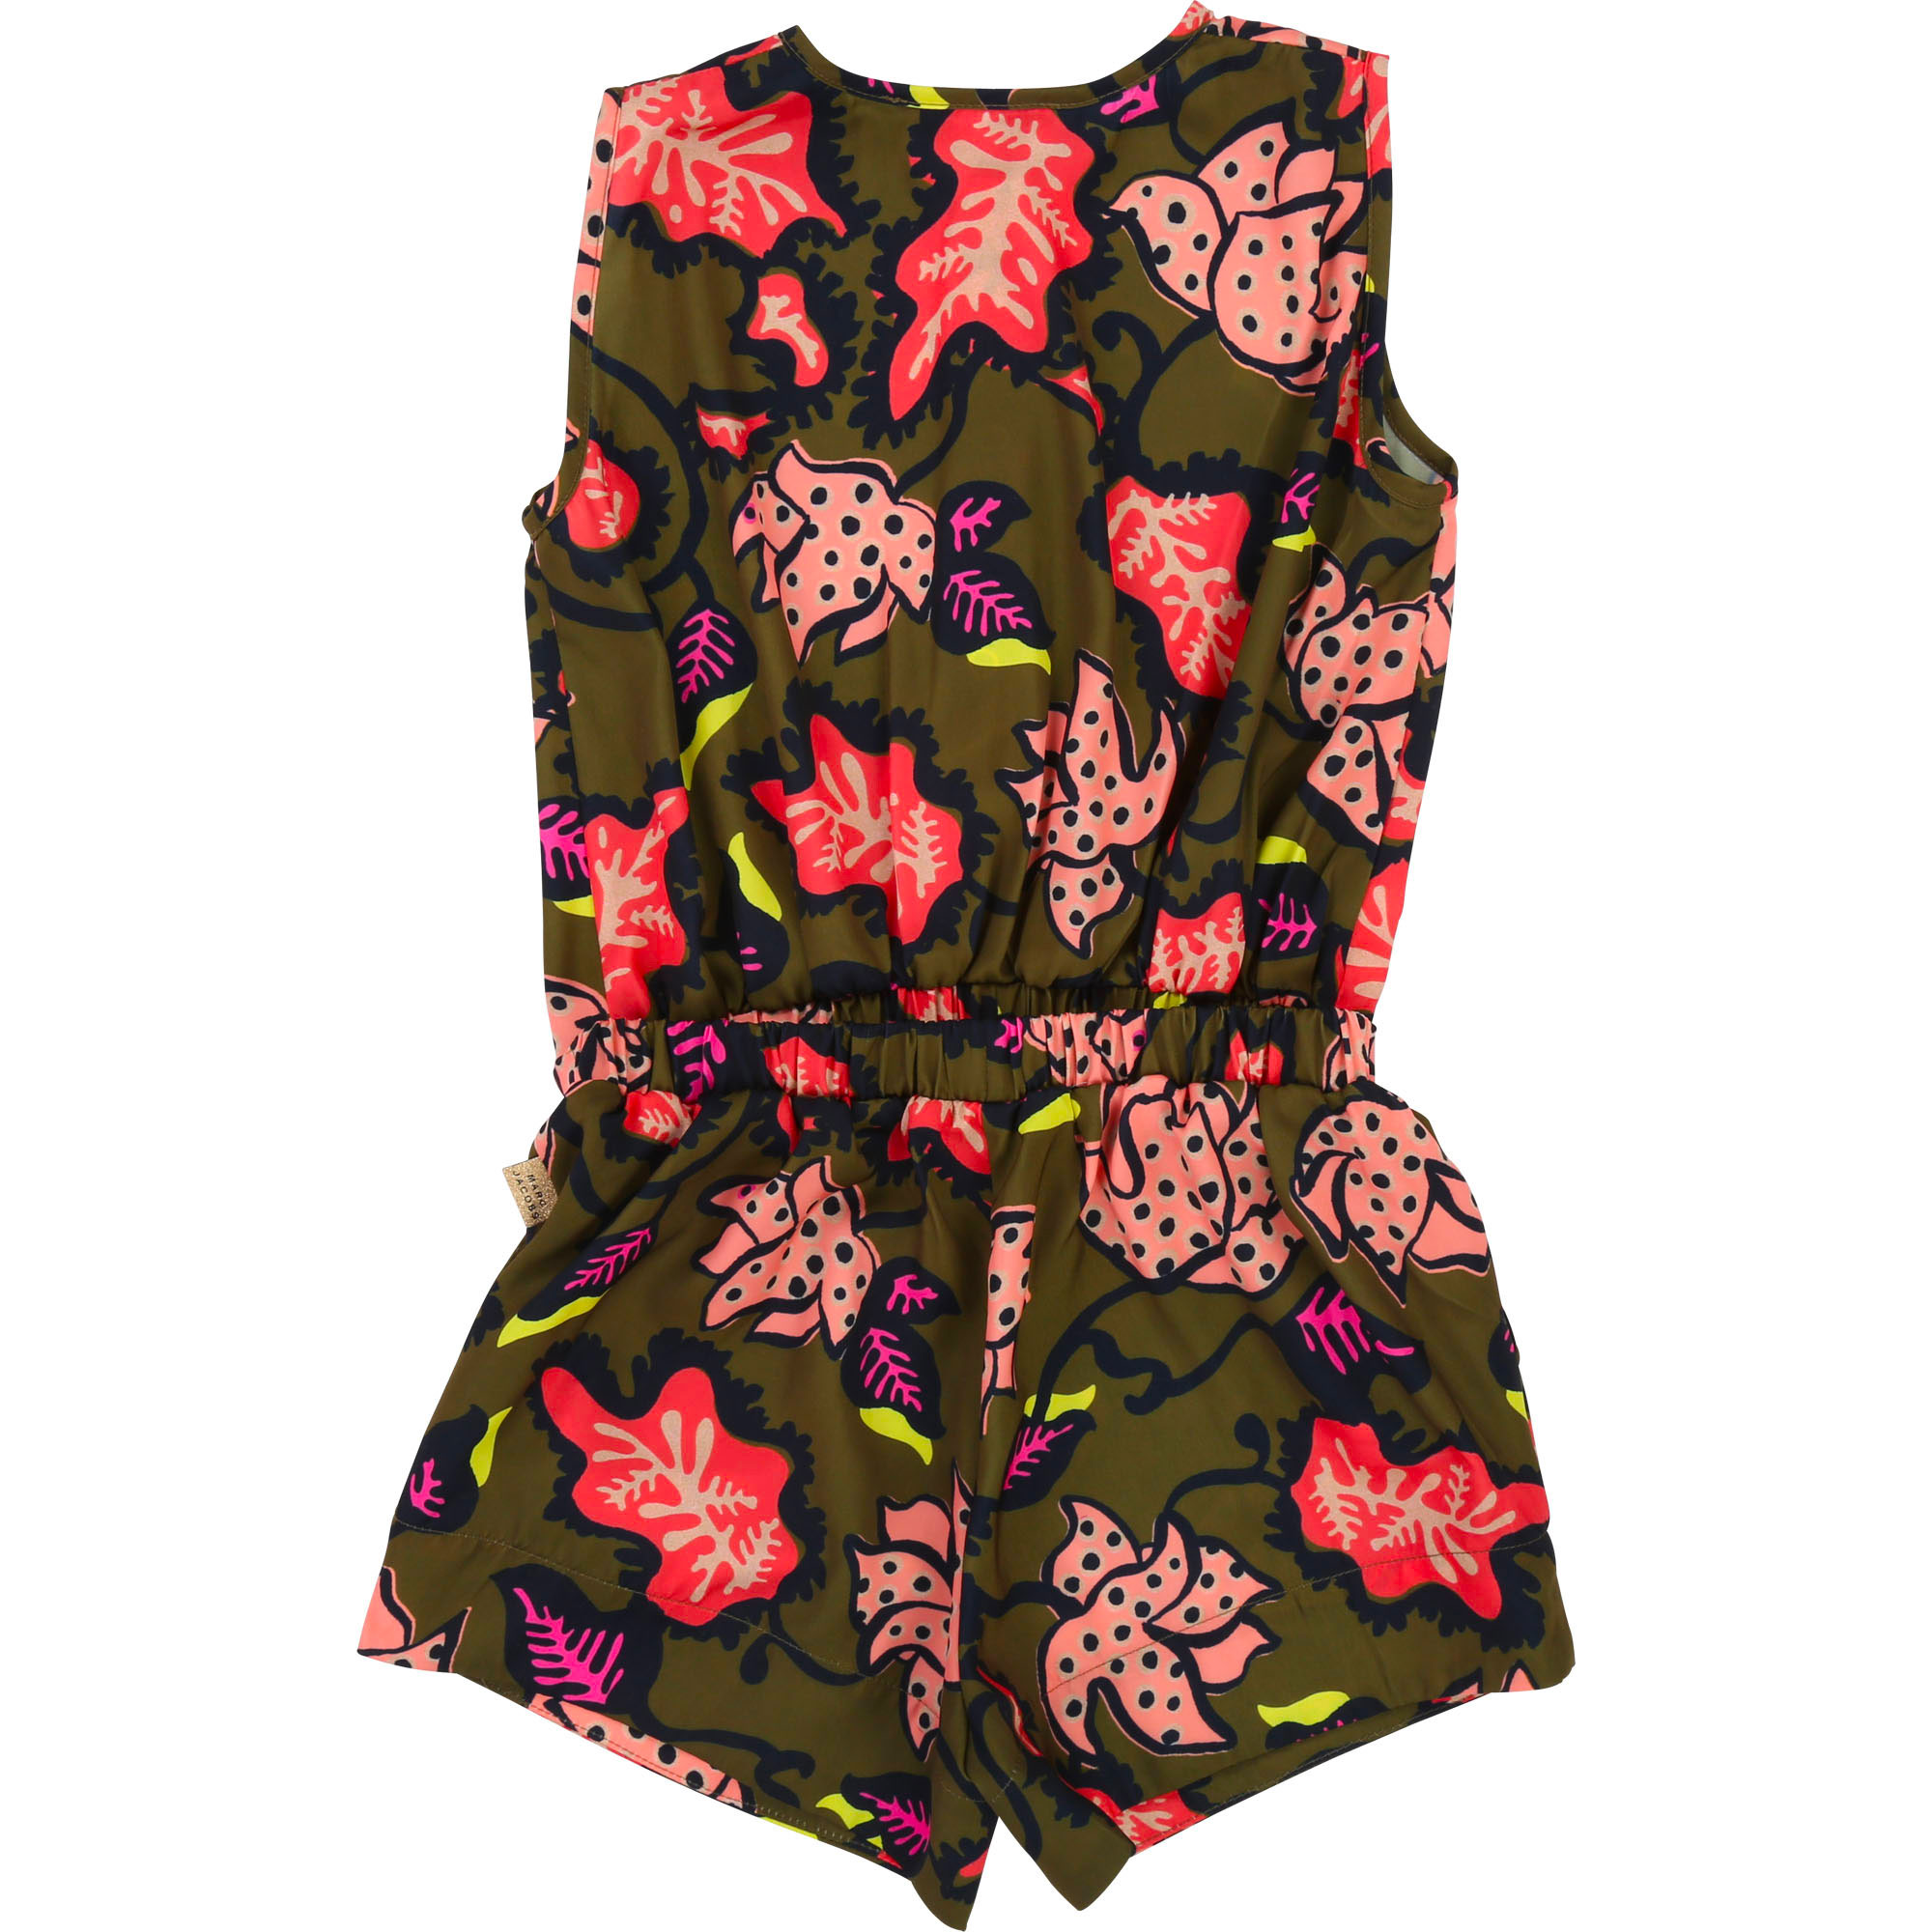 2-in-1 patterned playsuit THE MARC JACOBS for GIRL